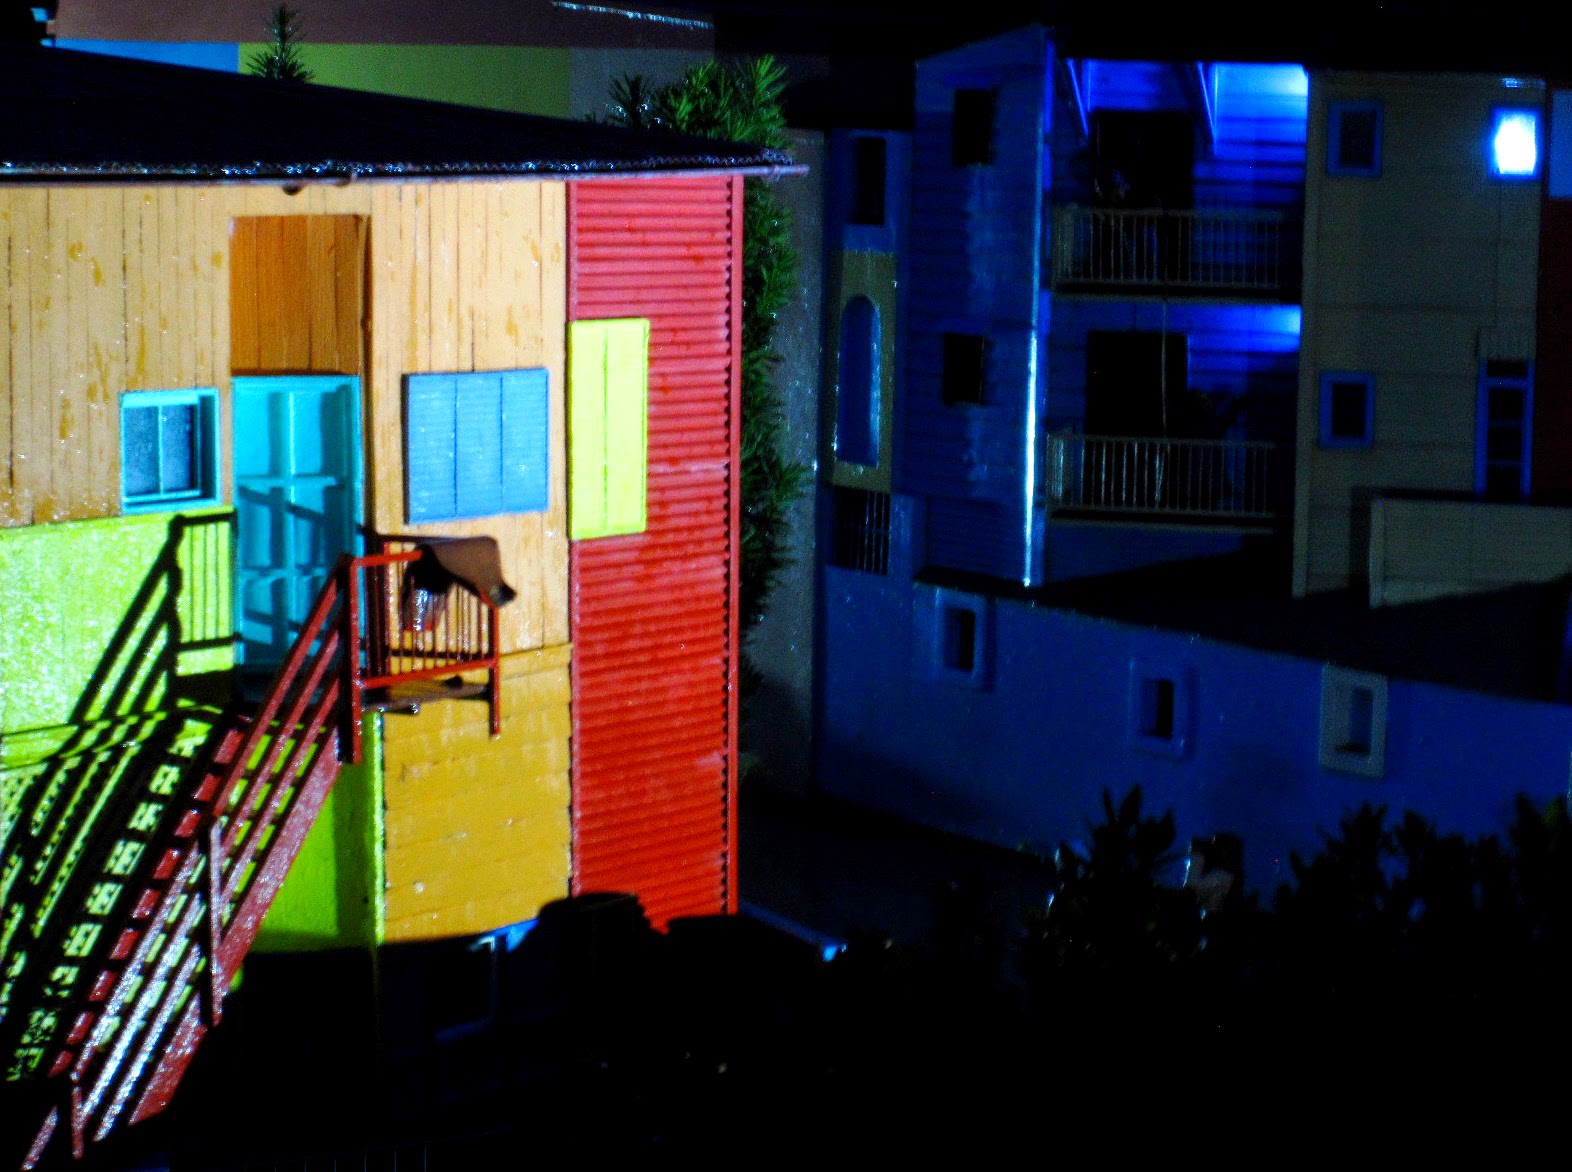 Miniature model of colourfull apartment buildings at night.